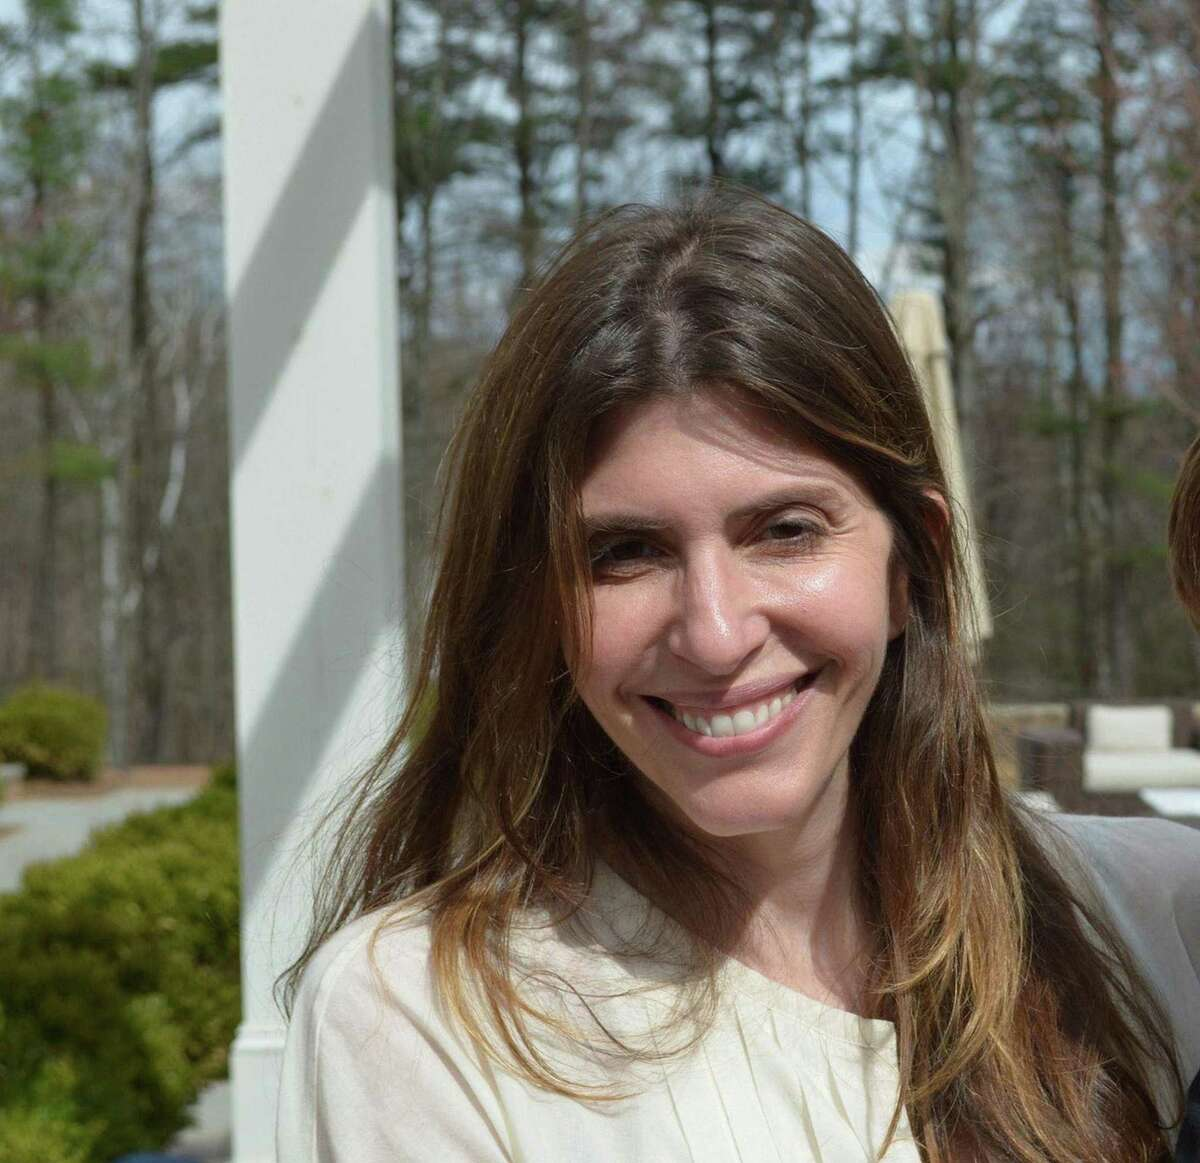 Jennifer Dulos, mother of five, went missing after dropping off her kids at school on May 24, 2019. May 24, 2021, marked the two-year milestone since her disappearance. She has never been found.